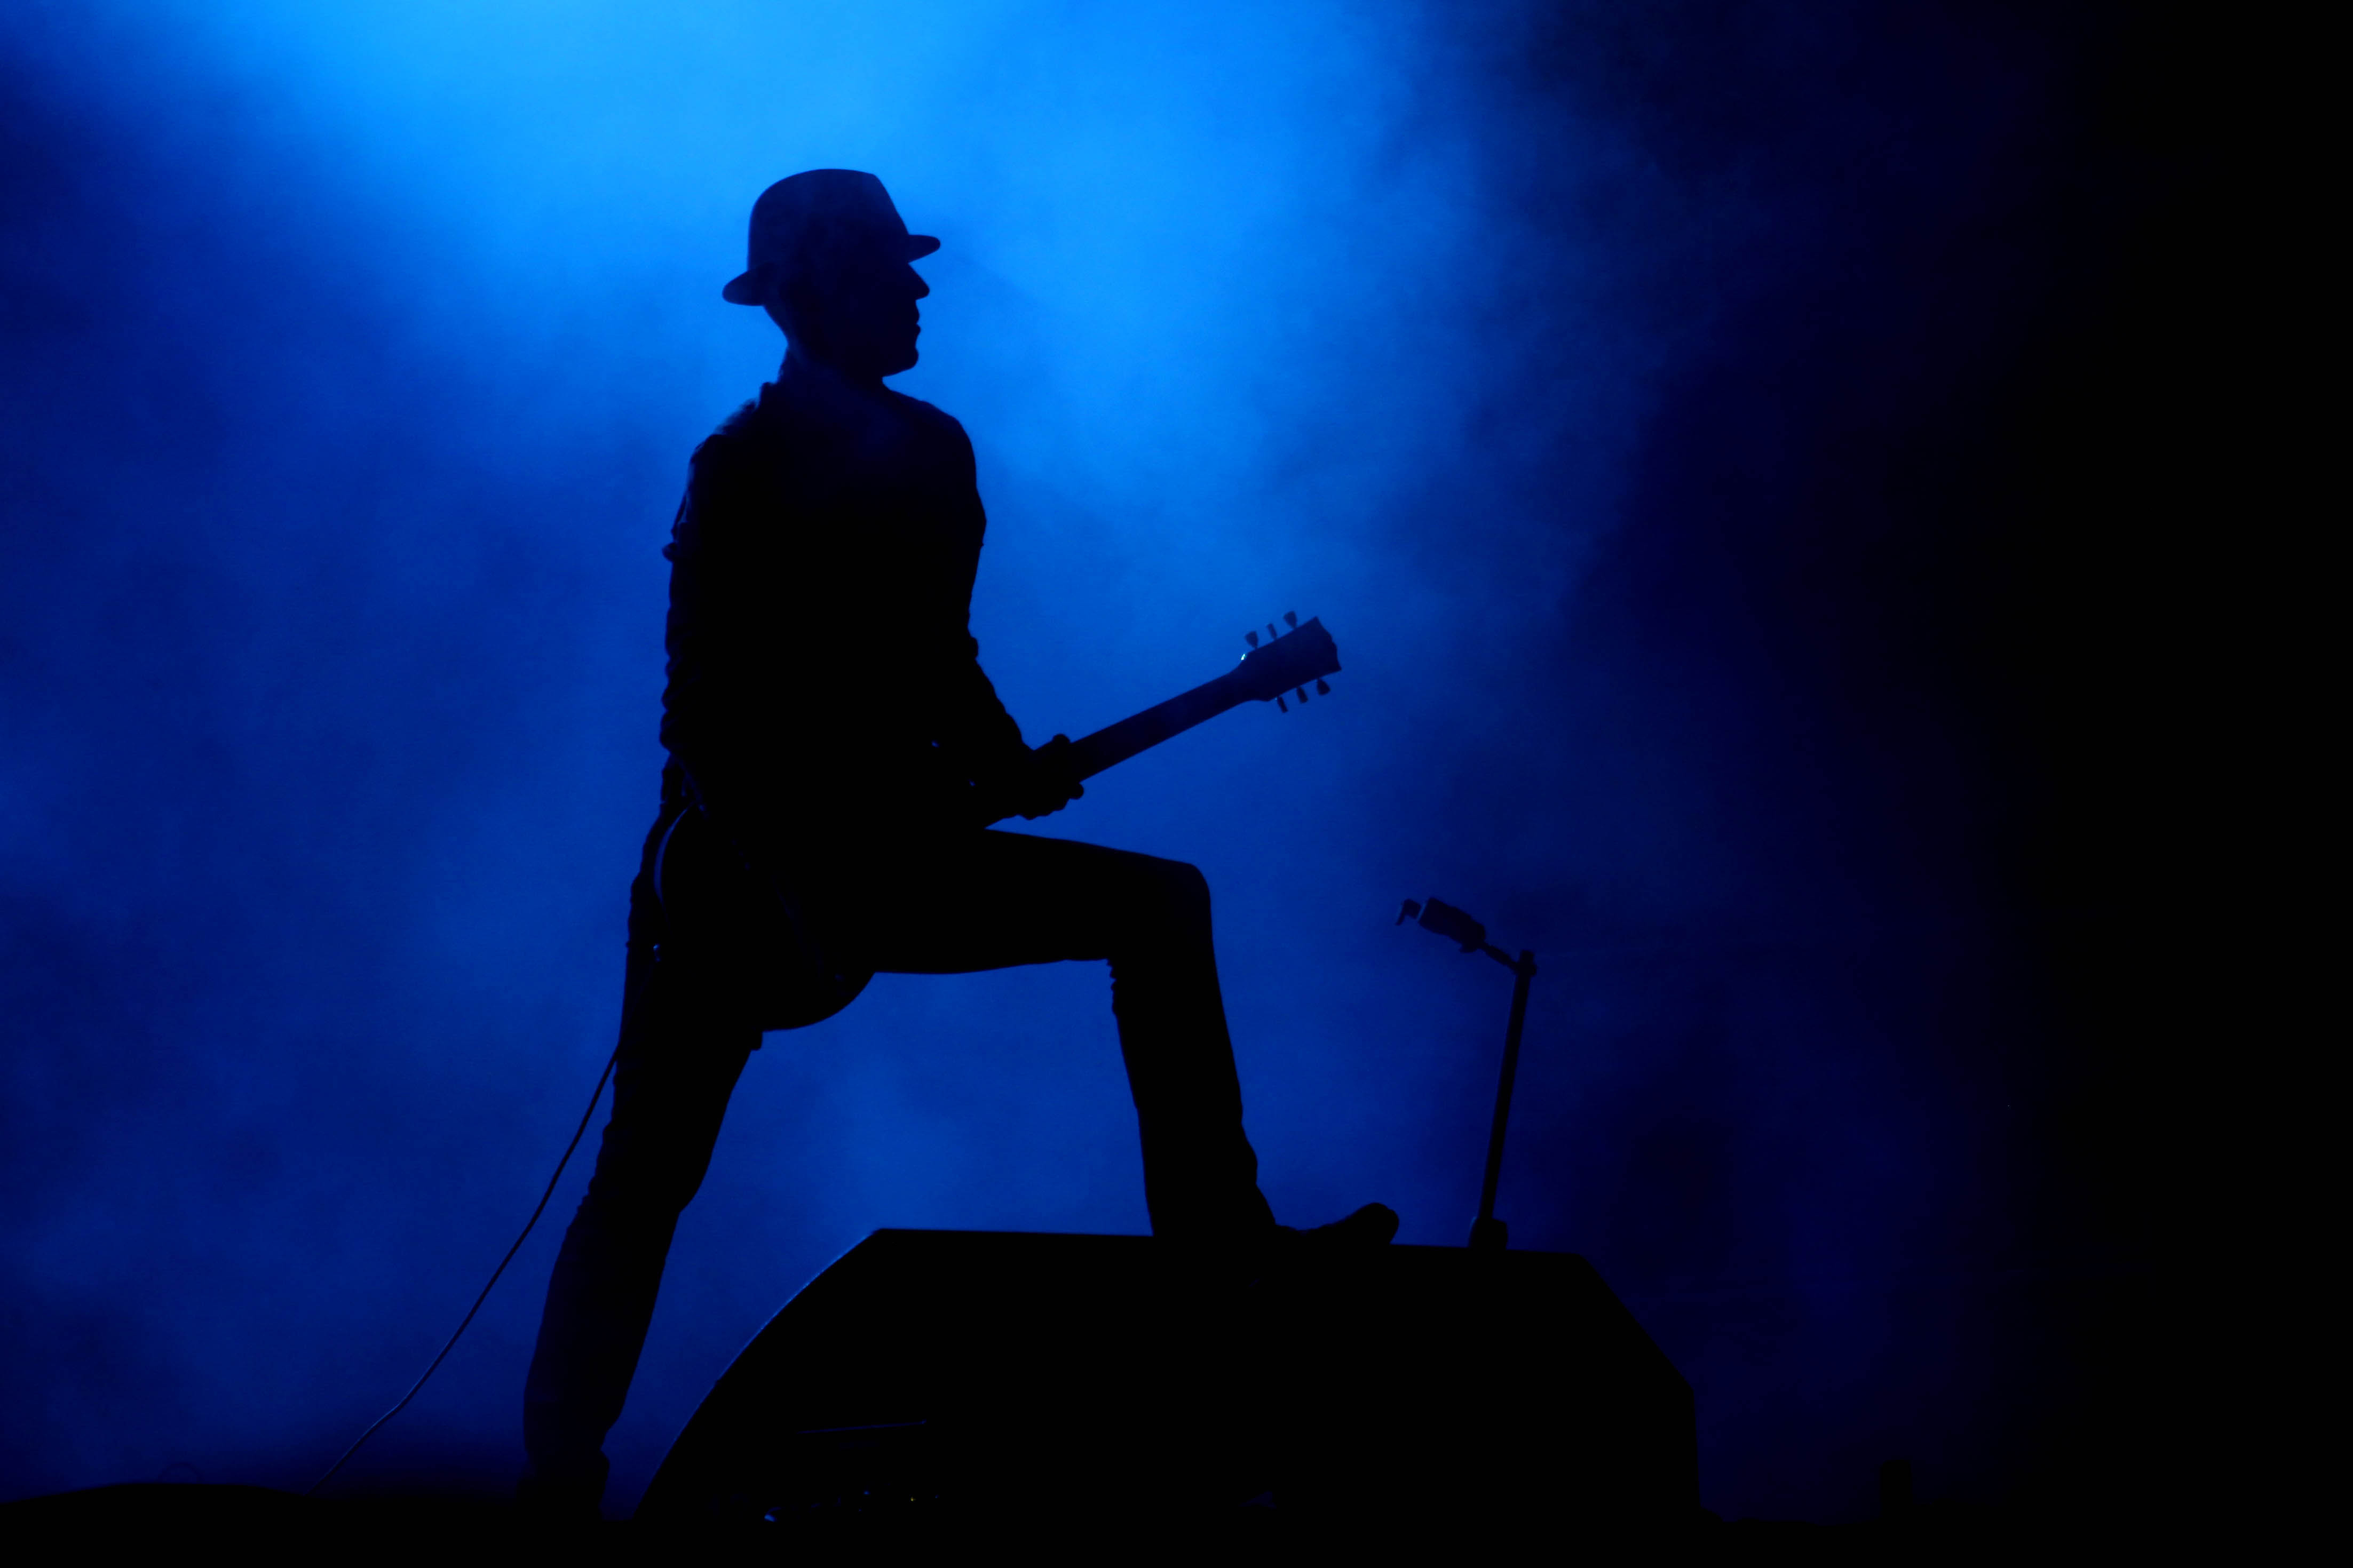 A member of the Los Angeles band Blind Melon performs during the Cumbre Tajin 2013 music festival in Papantla, Mexico, Saturday, March 23, 2013. (AP Photo/Felix Marquez)